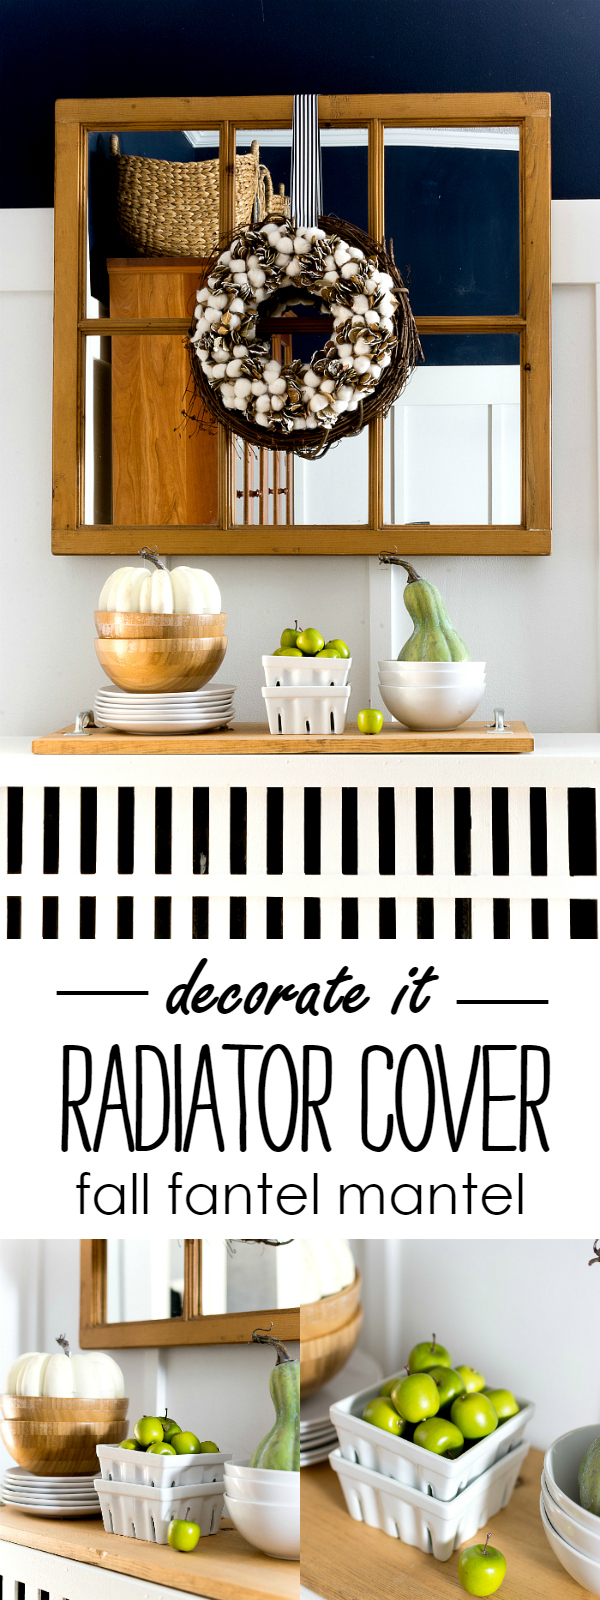 Radiator Cover Fall Mantel Fantel Decorating Ideas It All Started With Paint